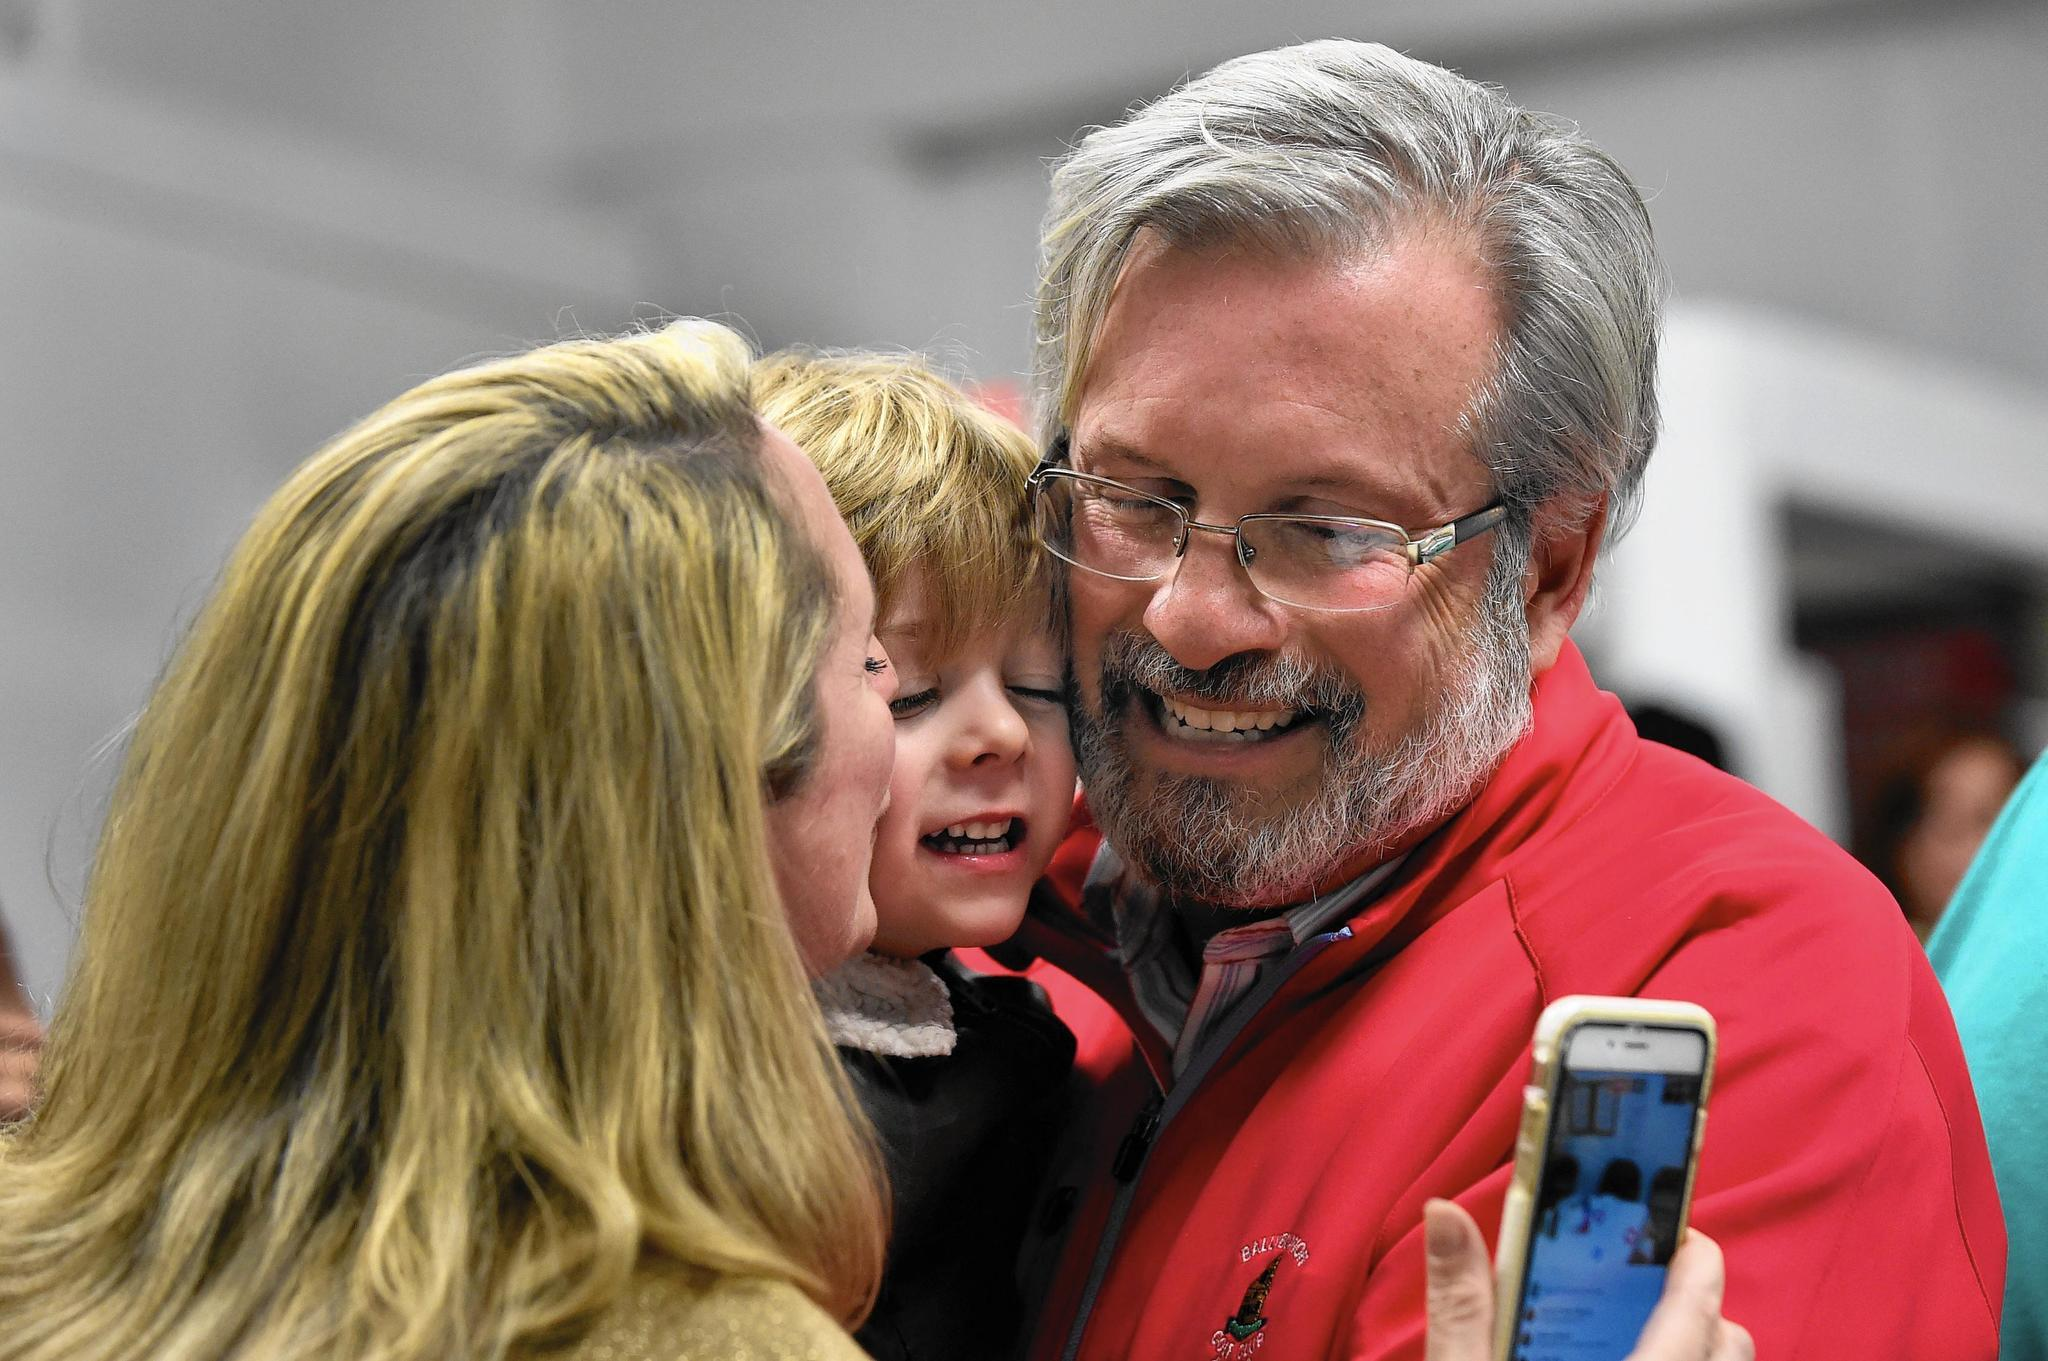 William Petit is congratulated by his wife, Christine, and his son, William, at Republican headquarters in Plainville after winning the 22nd House District House seat in November 2016. Petit defeated 11-term incumbent Democrat Betty Boukus.